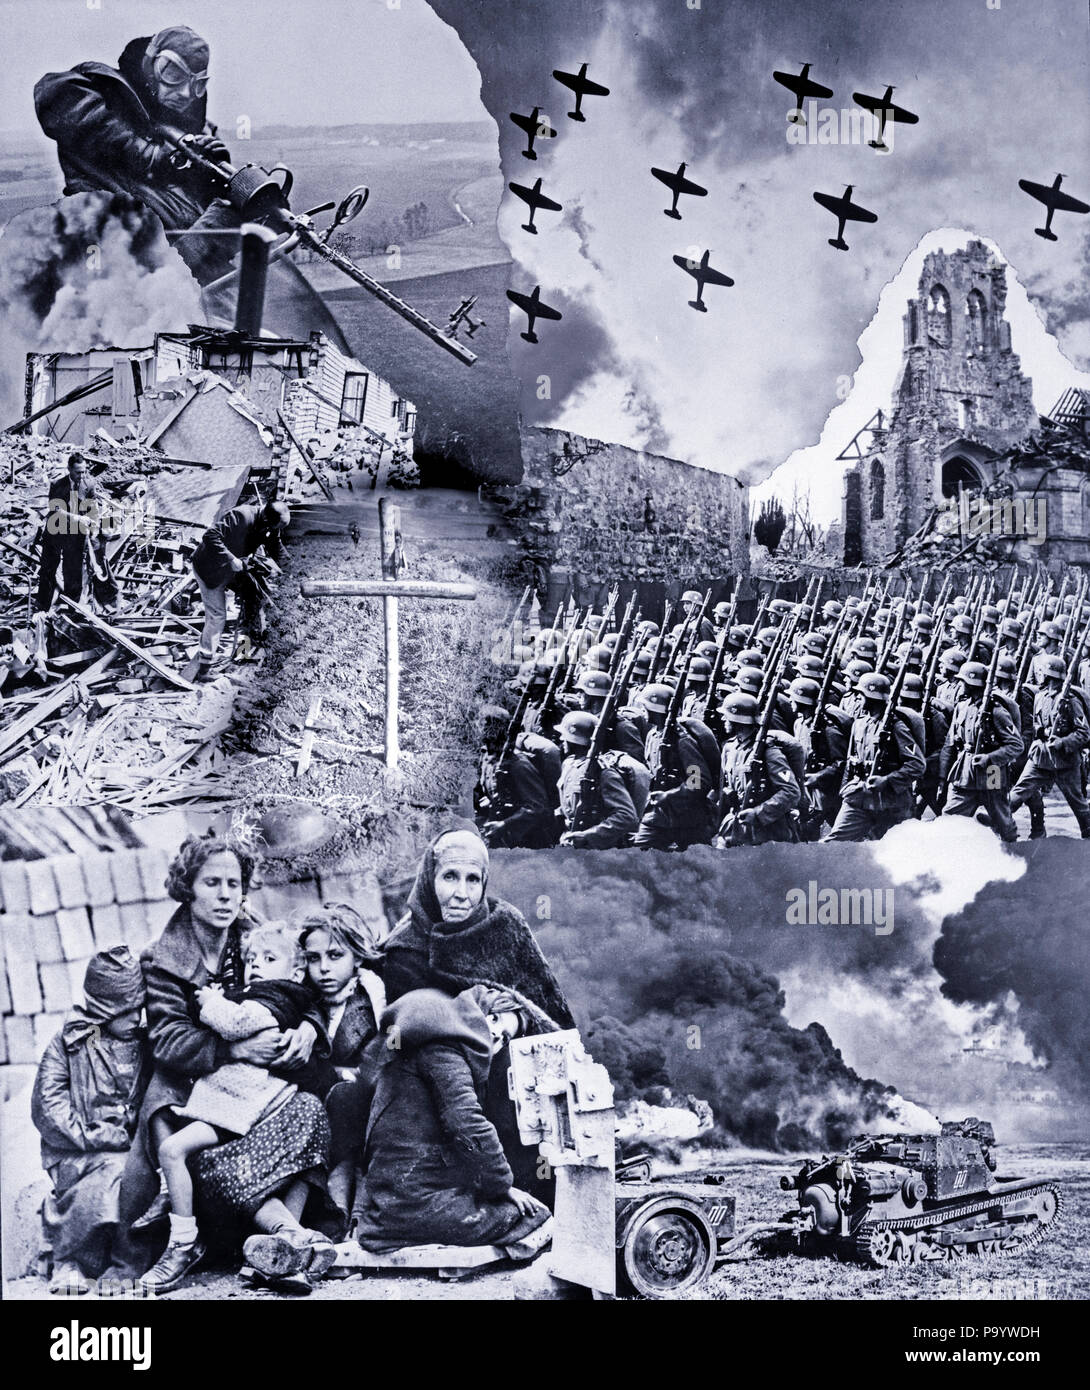 1930s 1940s MONTAGE WWII IMAGES MACHINE GUN ARTILLERY AIRPLANES NAZI TROOPS MARCHING REFUGEES WOMEN CHILDREN DEATH DESTRUCTION  - q74332 CPC001 HARS GROWN-UP MALES RISK TRANSPORTATION B&W SADNESS DISASTER AIRPLANES DEATH DESTRUCTION COMPOSITE EXCITEMENT WORLD WARS WAR PLANE WORLD WAR WORLD WAR TWO WAR PLANES WORLD WAR II POLITICS TROOPS UNIFORMS MACHINE GUN ESCAPE MOBILITY NAZI VICTIMS WORLD WAR 2 BOMBERS IMAGES CONFLICTING DEVASTATION FIREARM GRAVE OPPRESSION OPPRESSORS REFUGEES RUINS WEHRMACHT ARTILLERY BATTLING BLACK AND WHITE - Stock Image